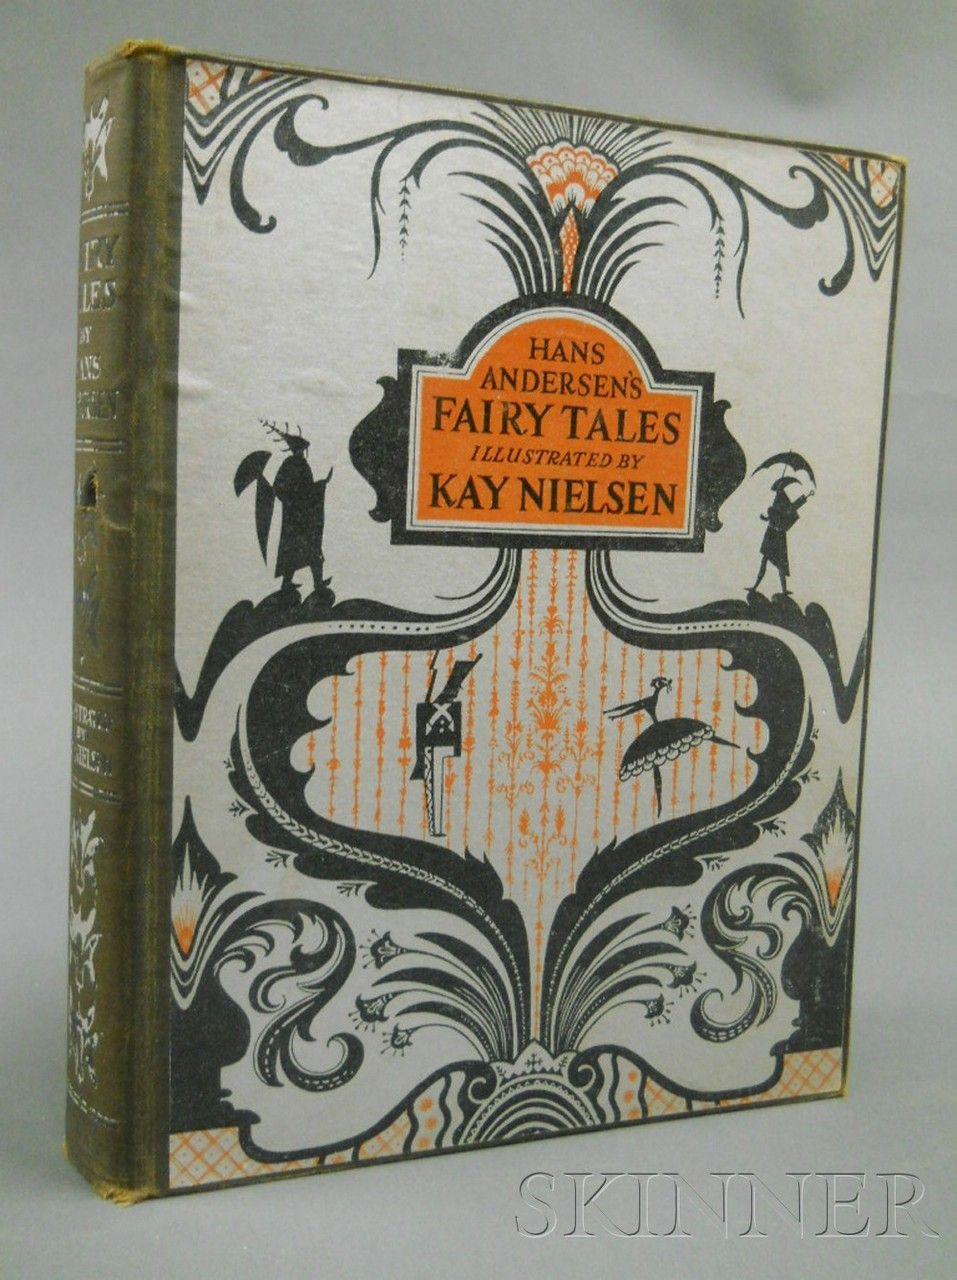 Fairy Tales by Hans Andersen, New York: George Doran Company, 1924.Illustrated by Kay Nielsen.First trade edition, original cloth and pictorial boards, with twelve mounted color plates. Kay Nielsen (Denmark, 1886-1957), in 1924,exhibited at the Leicester Galleries for work on Hans Anderson's Fairy Tales. In 1925, he completed 12 color plates for Hansel and Gretel: Stories from the Brothers Grimm.